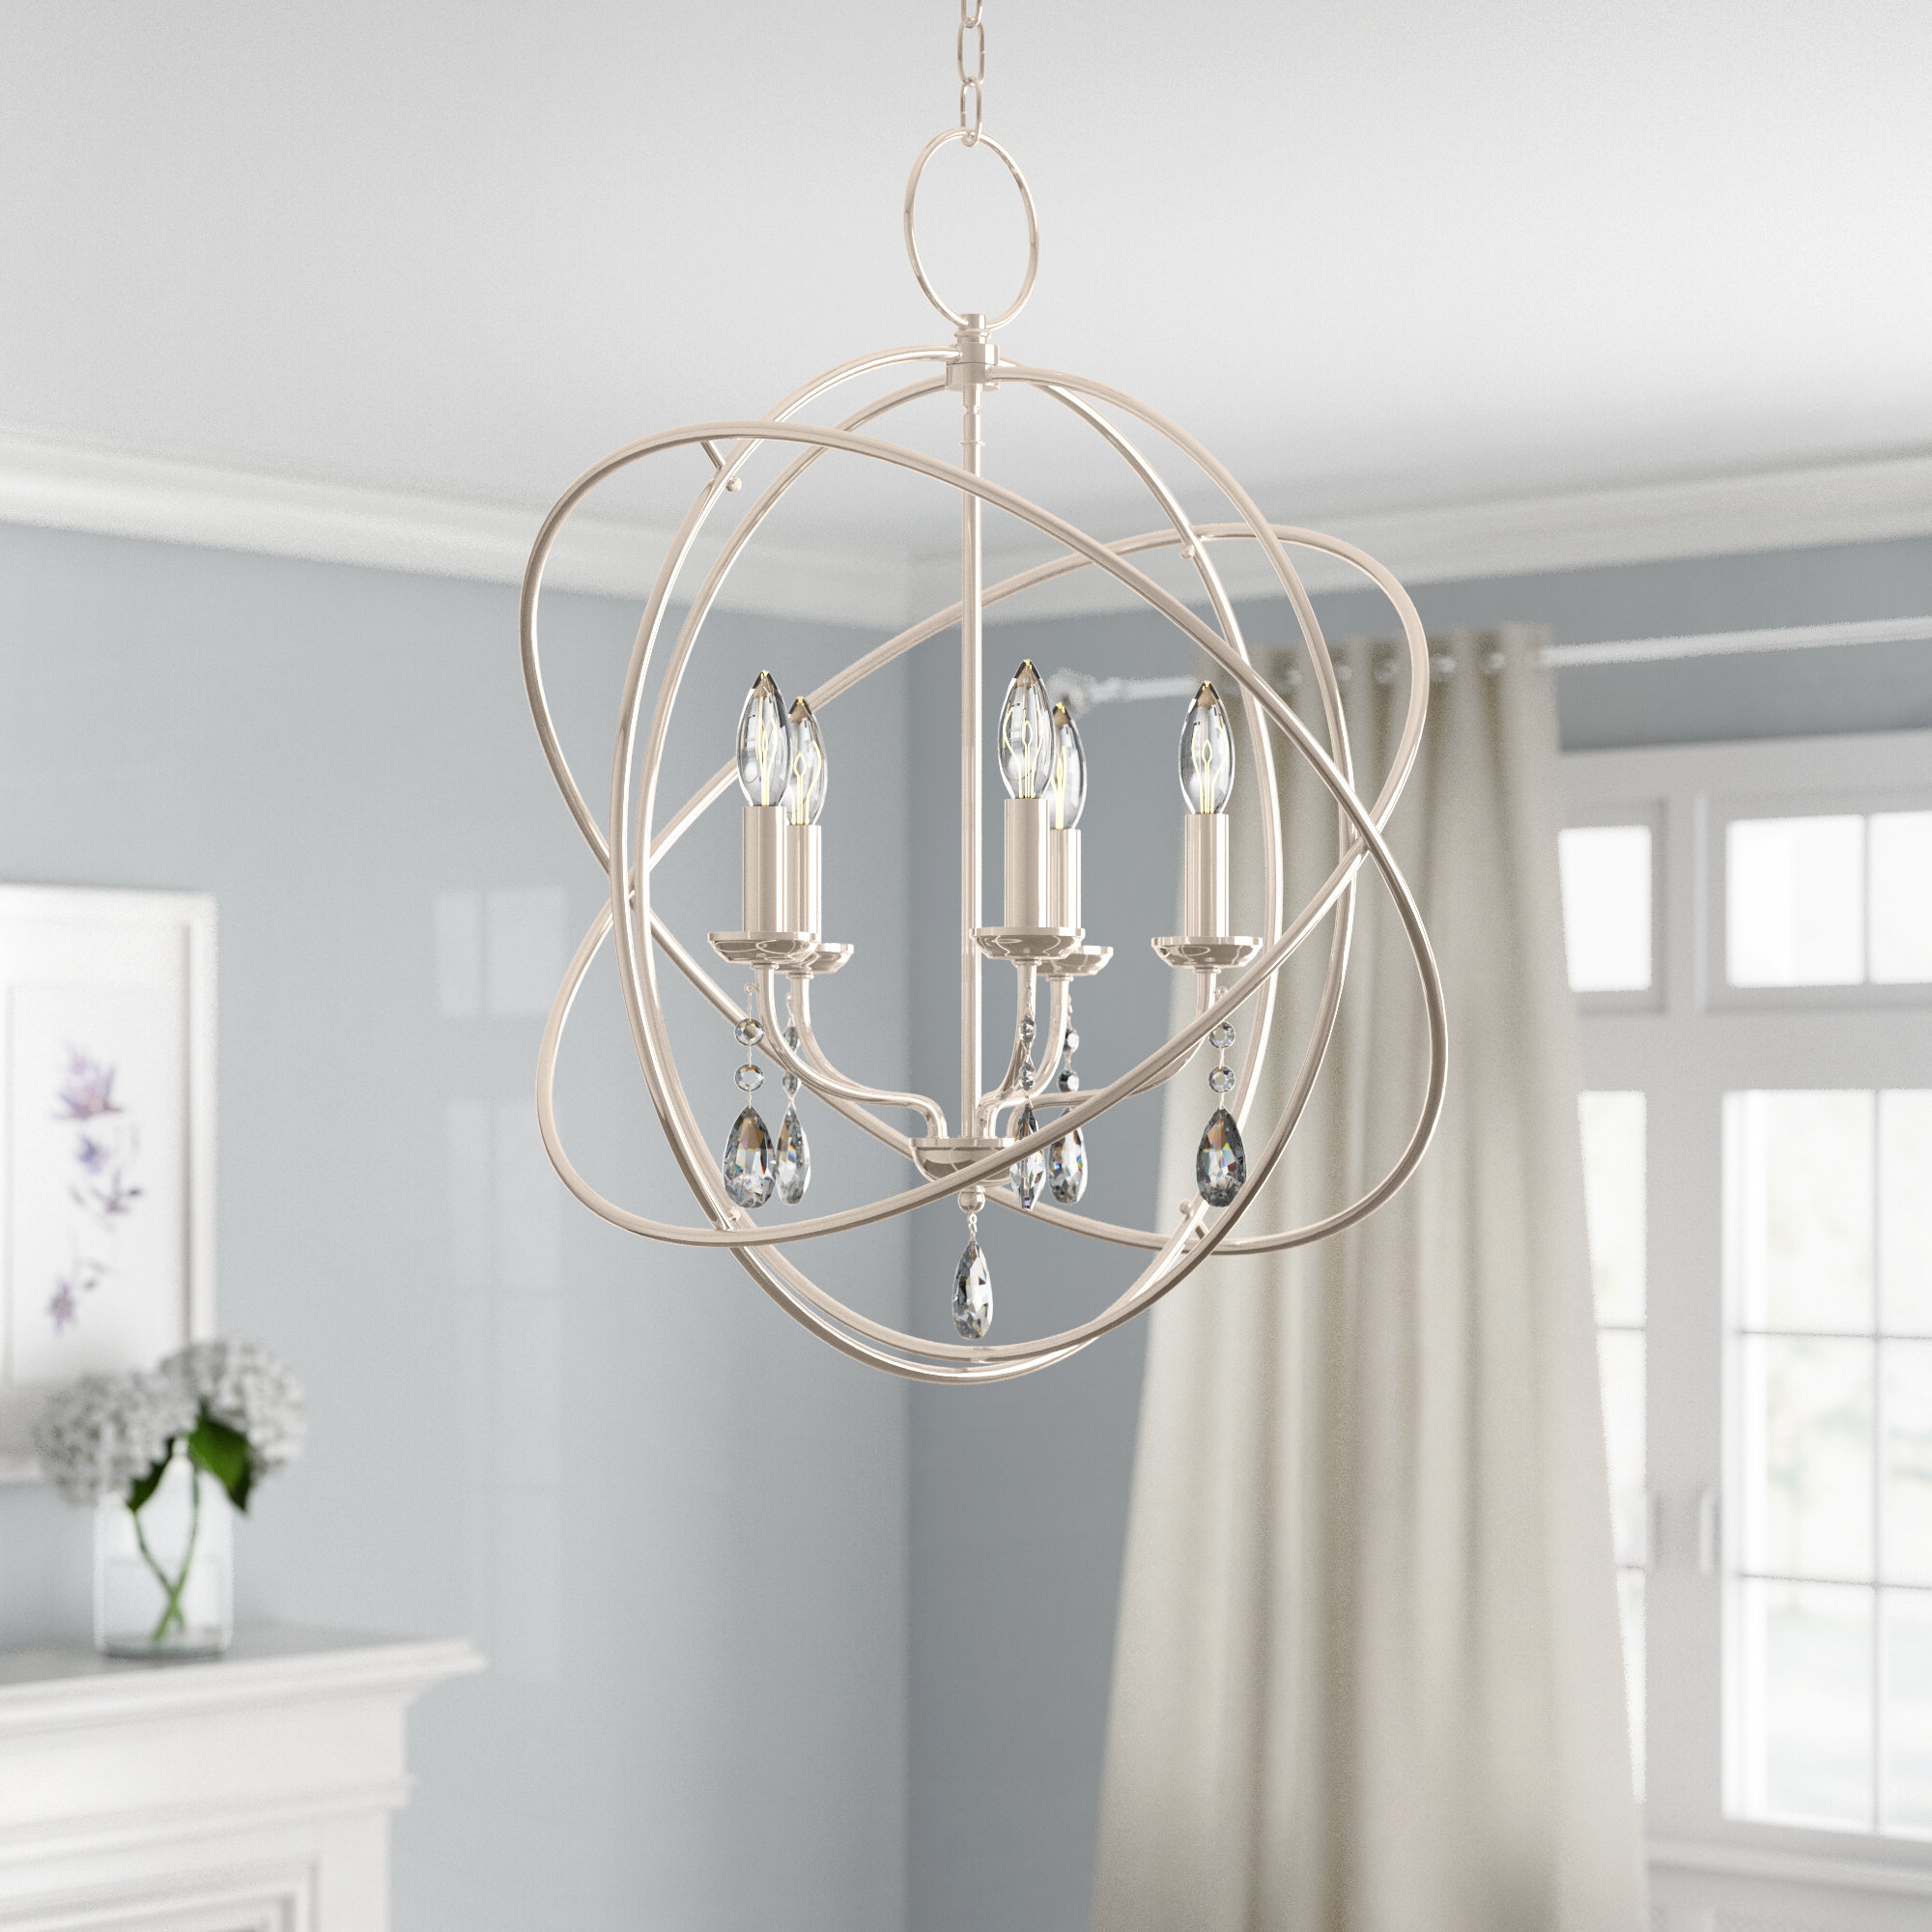 Newest Verlene Foyer 5 Light Globe Chandeliers Throughout Auberta 5 Light Globe Chandelier (View 12 of 20)